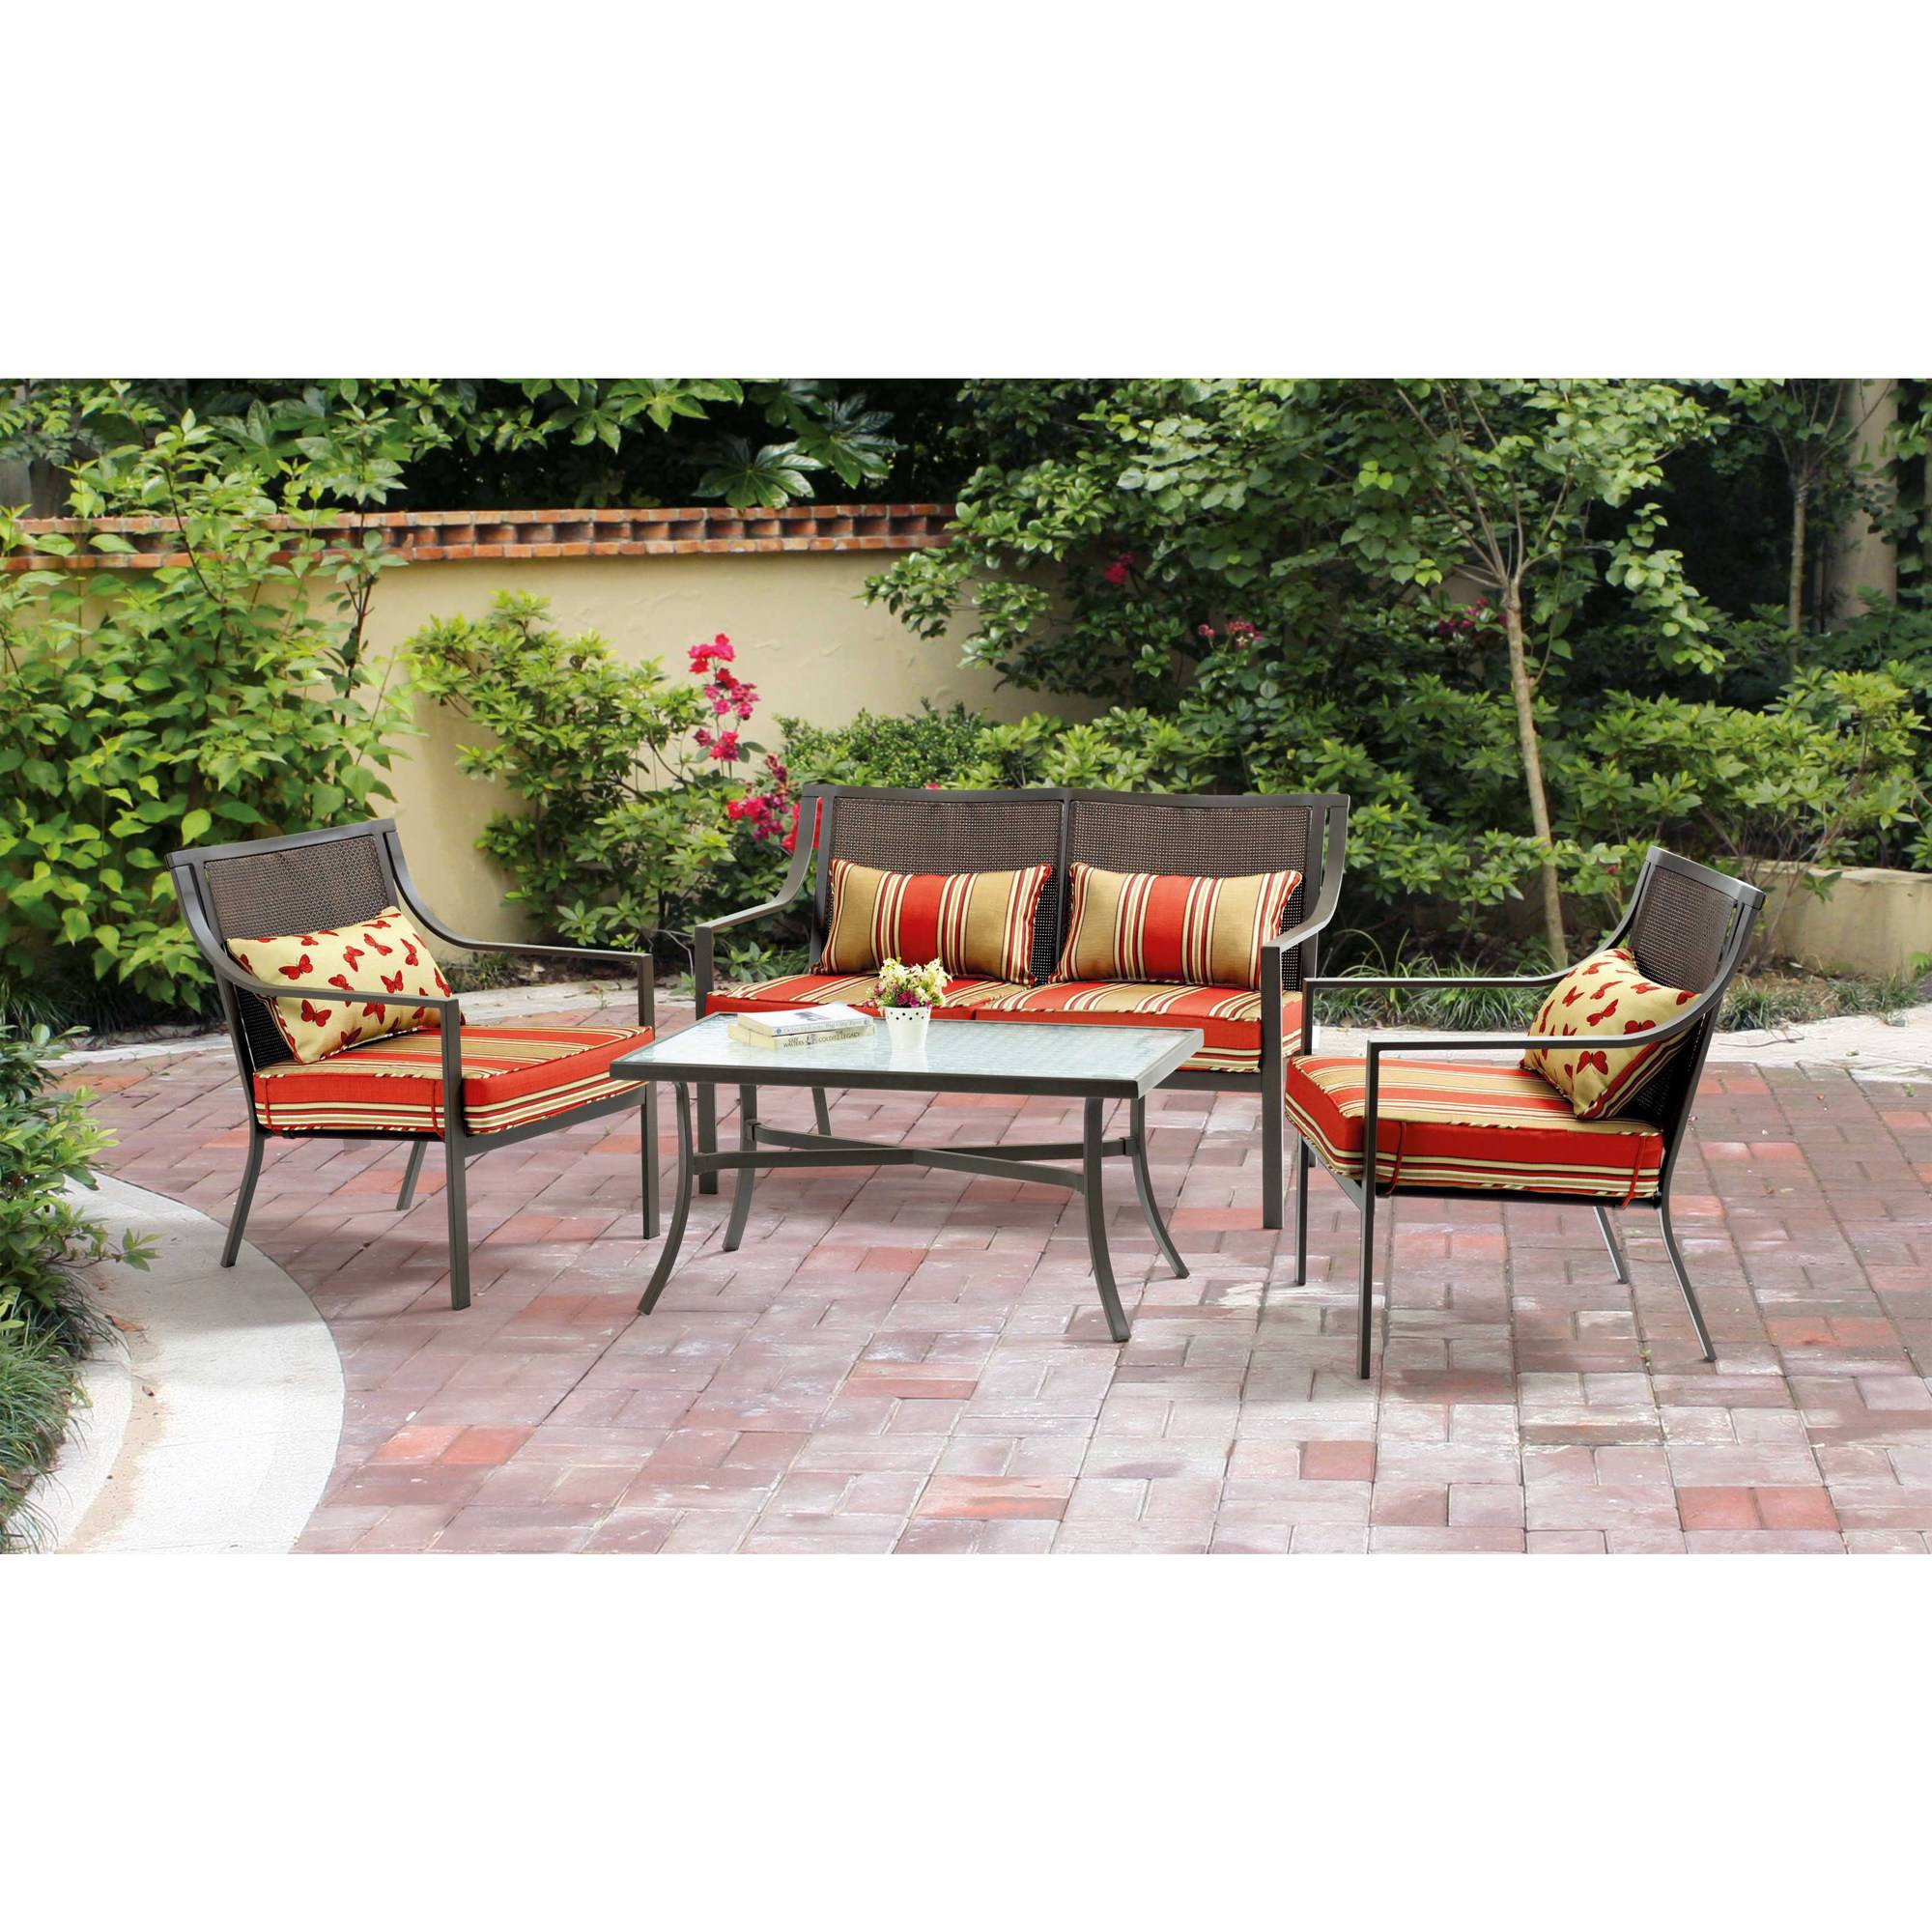 Mainstays Alexandra Square 4-Piece Patio Conversation Set, Seats 4